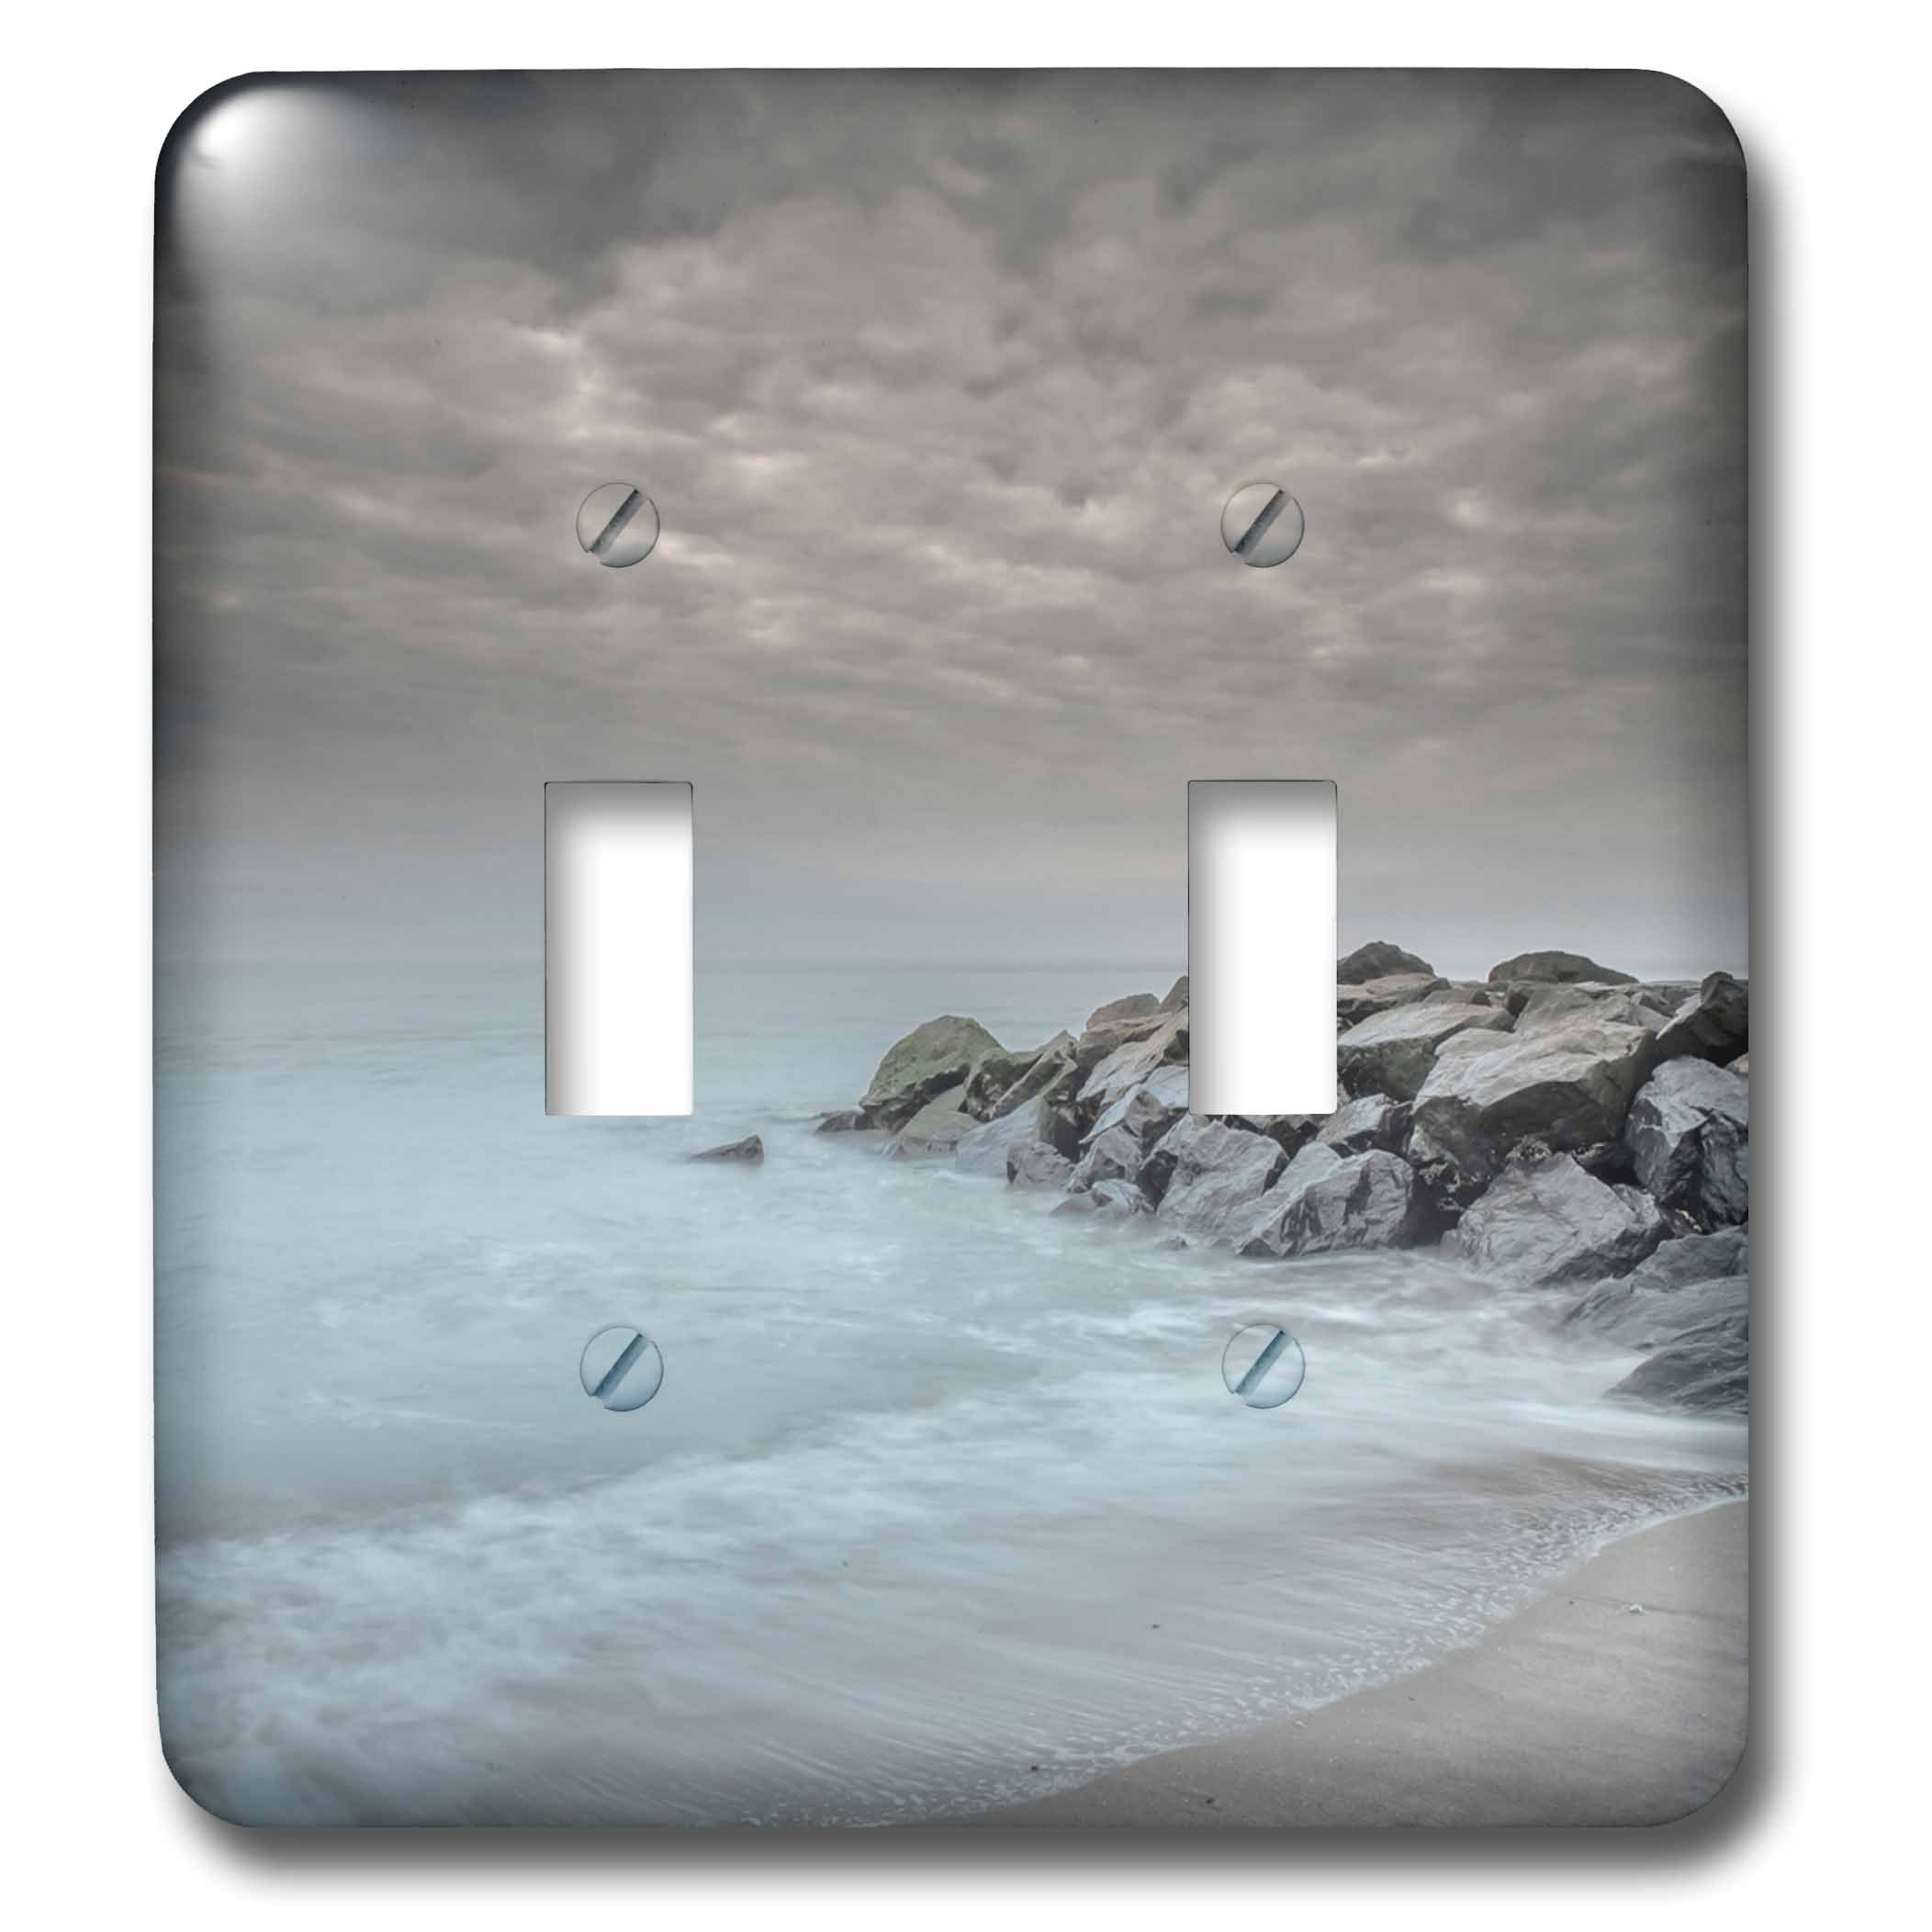 3dRose Danita Delimont - Beaches - USA, New Jersey, Cape May National Seashore. Stormy beach landscape. - Light Switch Covers - double toggle switch (lsp_279229_2) by 3dRose